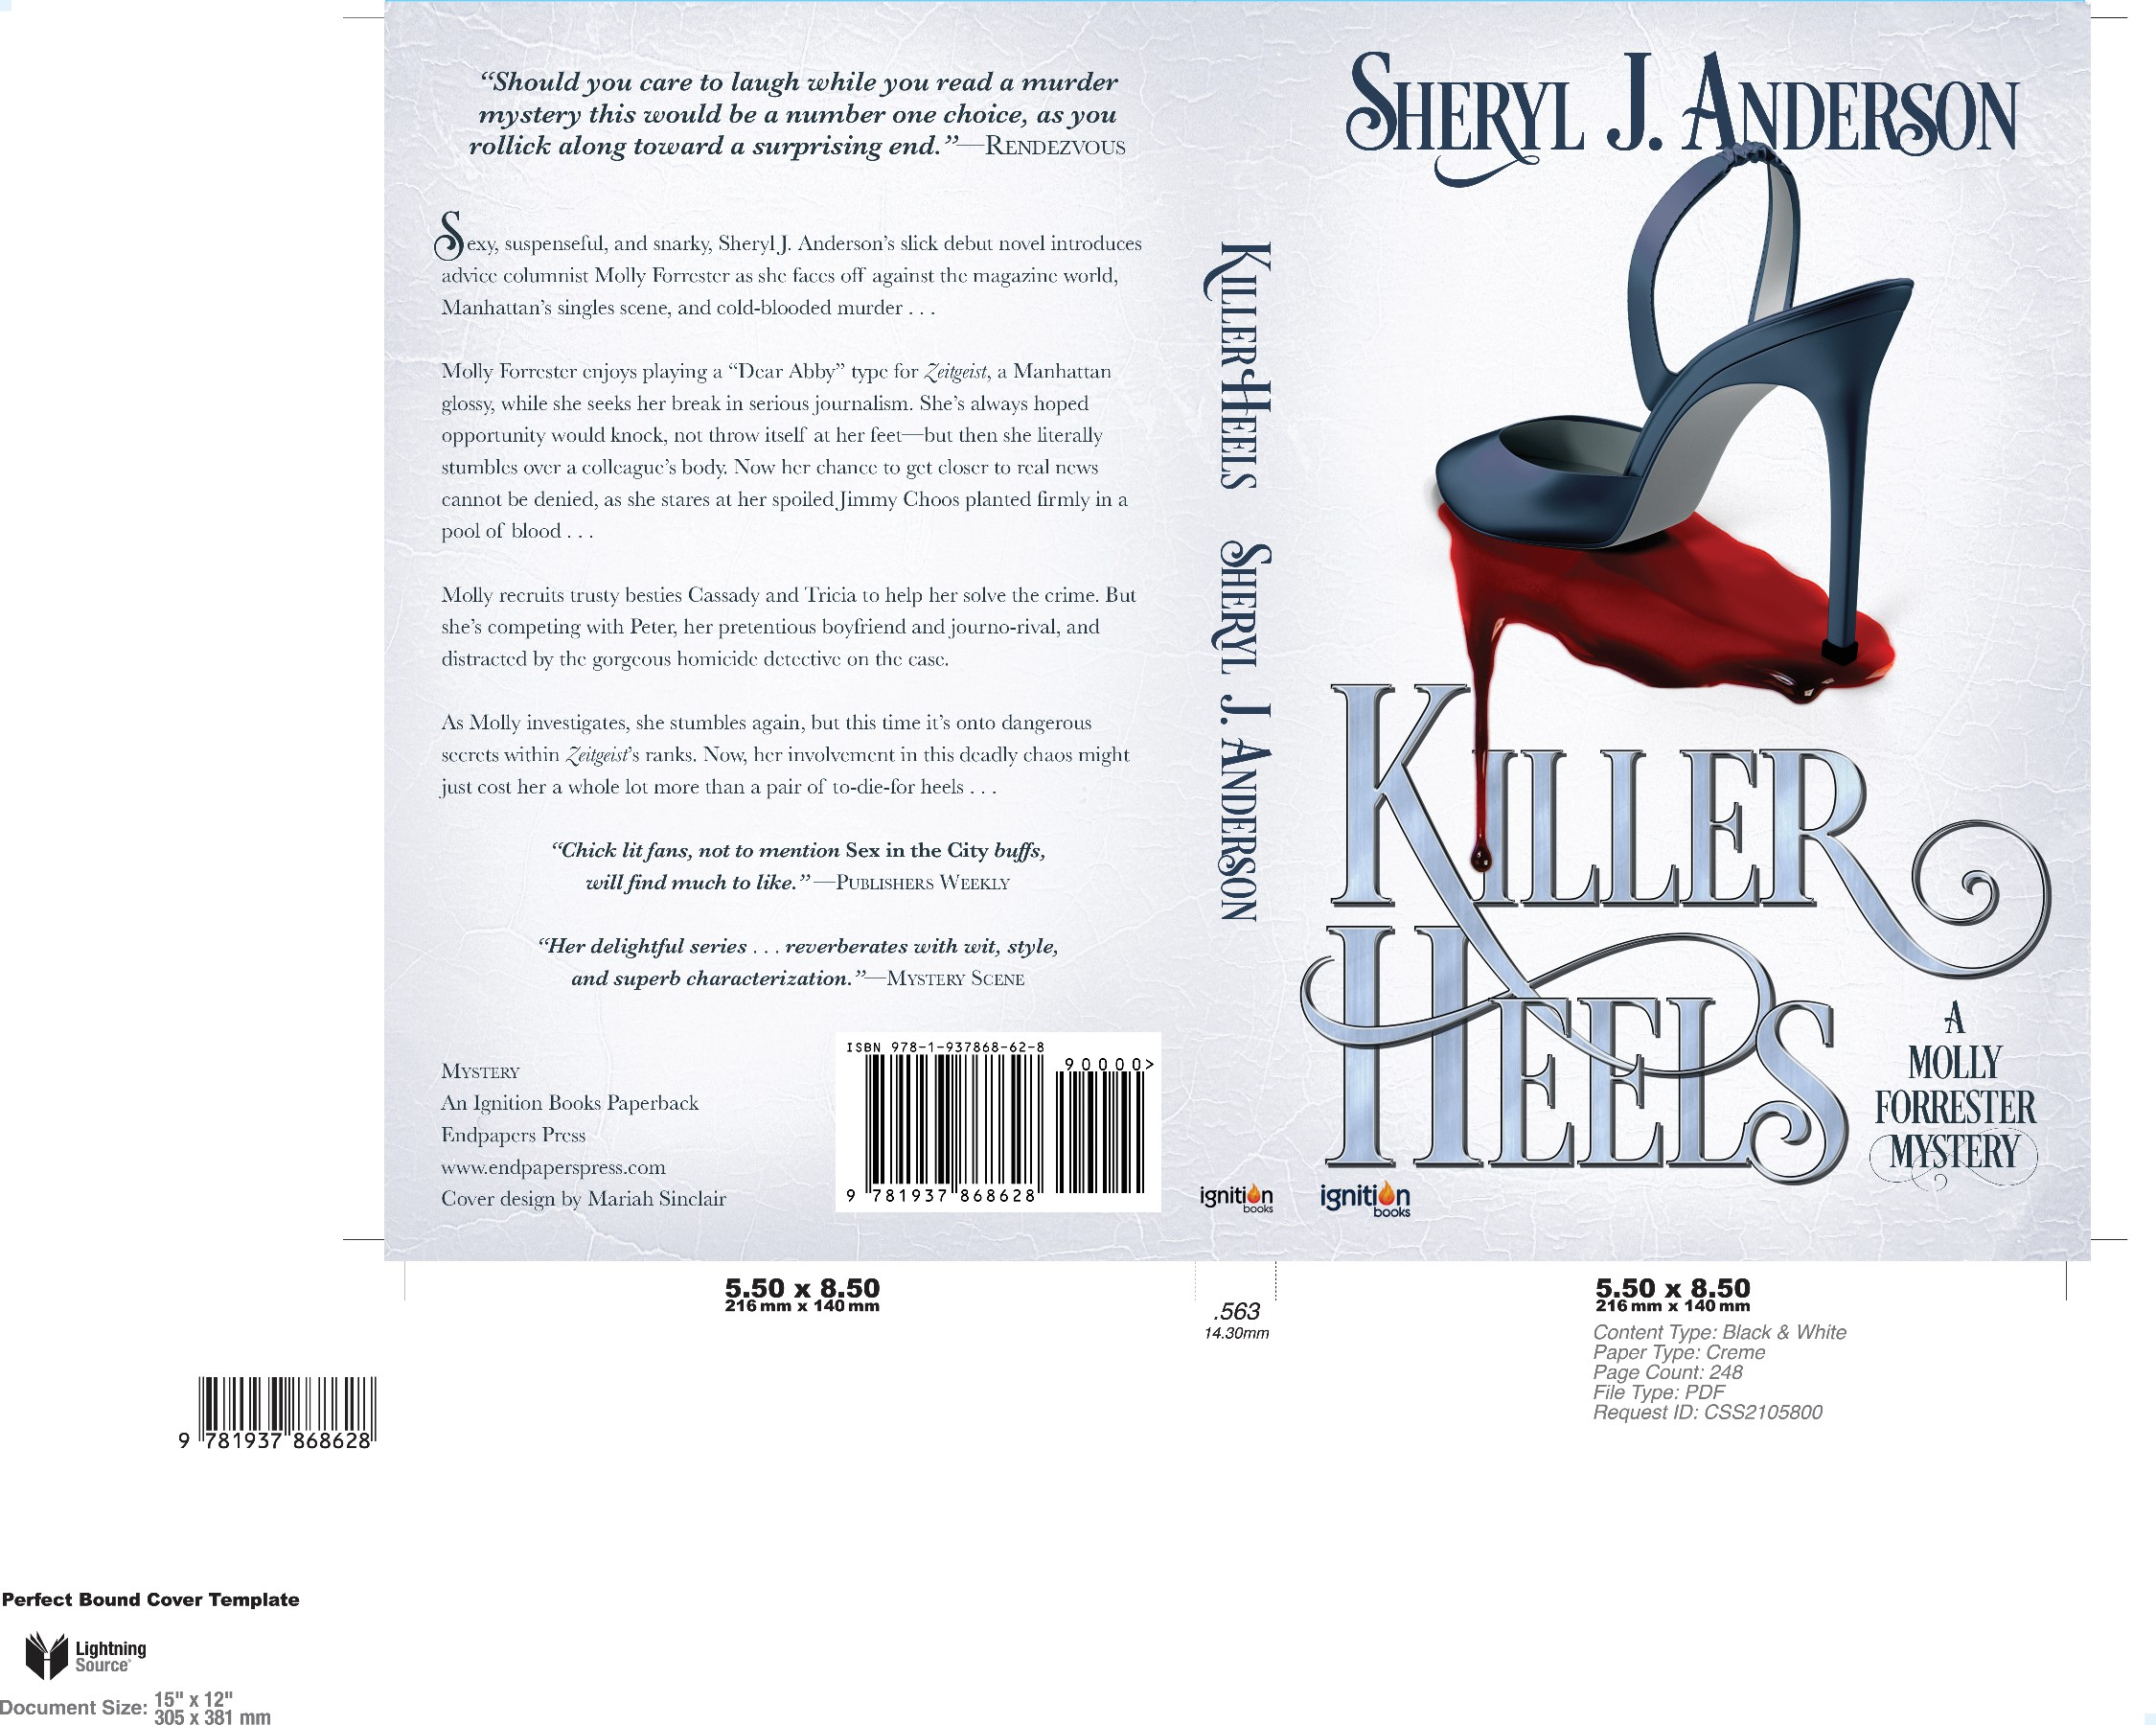 New cover needed for sexy murder mystery (first in four-book series)